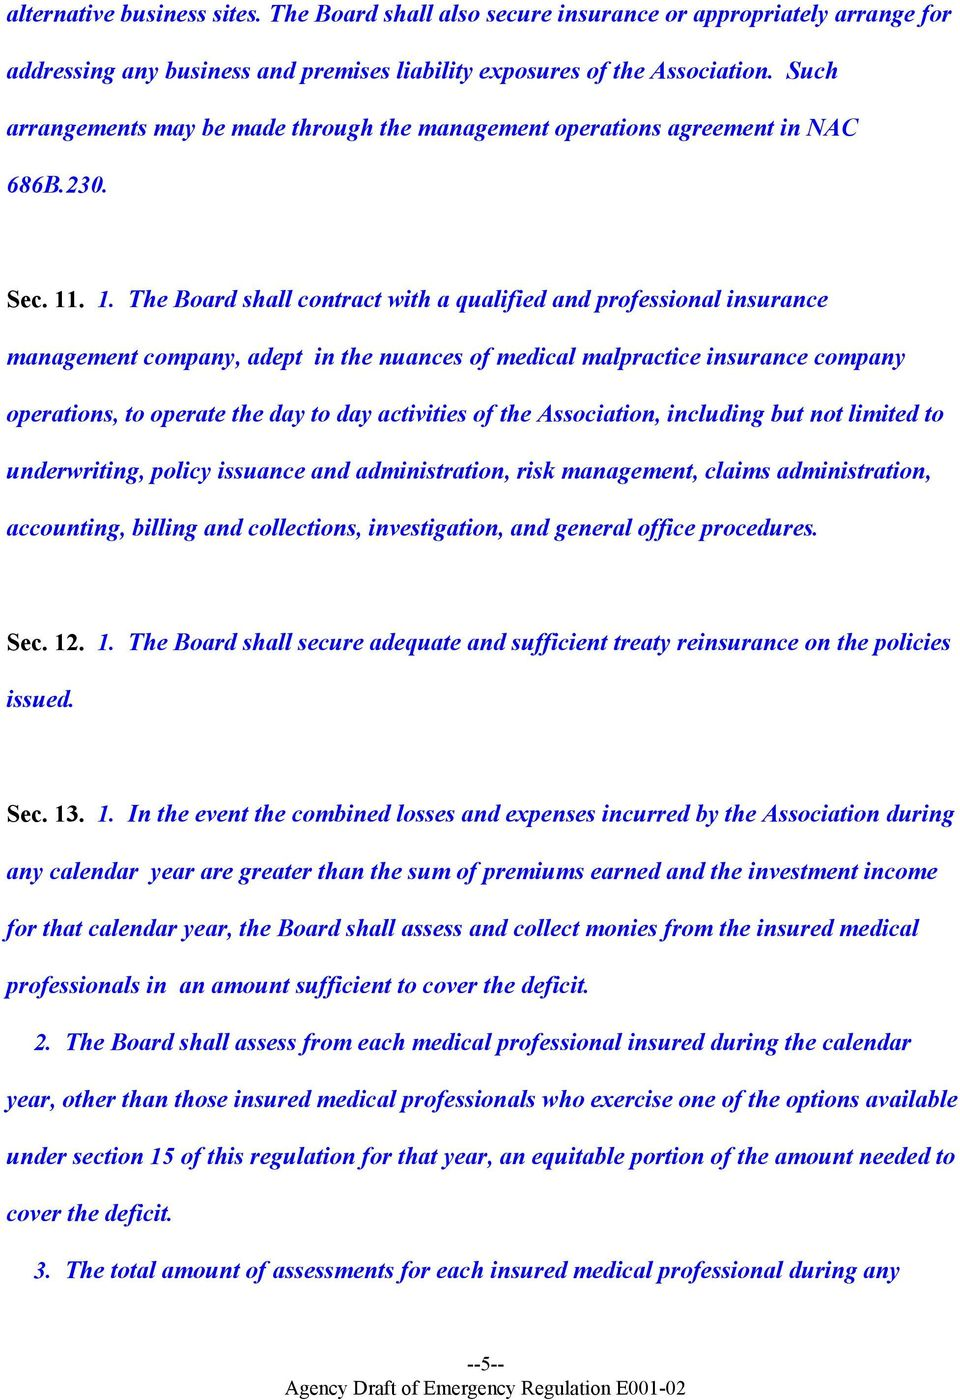 . 1. The Board shall contract with a qualified and professional insurance management company, adept in the nuances of medical malpractice insurance company operations, to operate the day to day